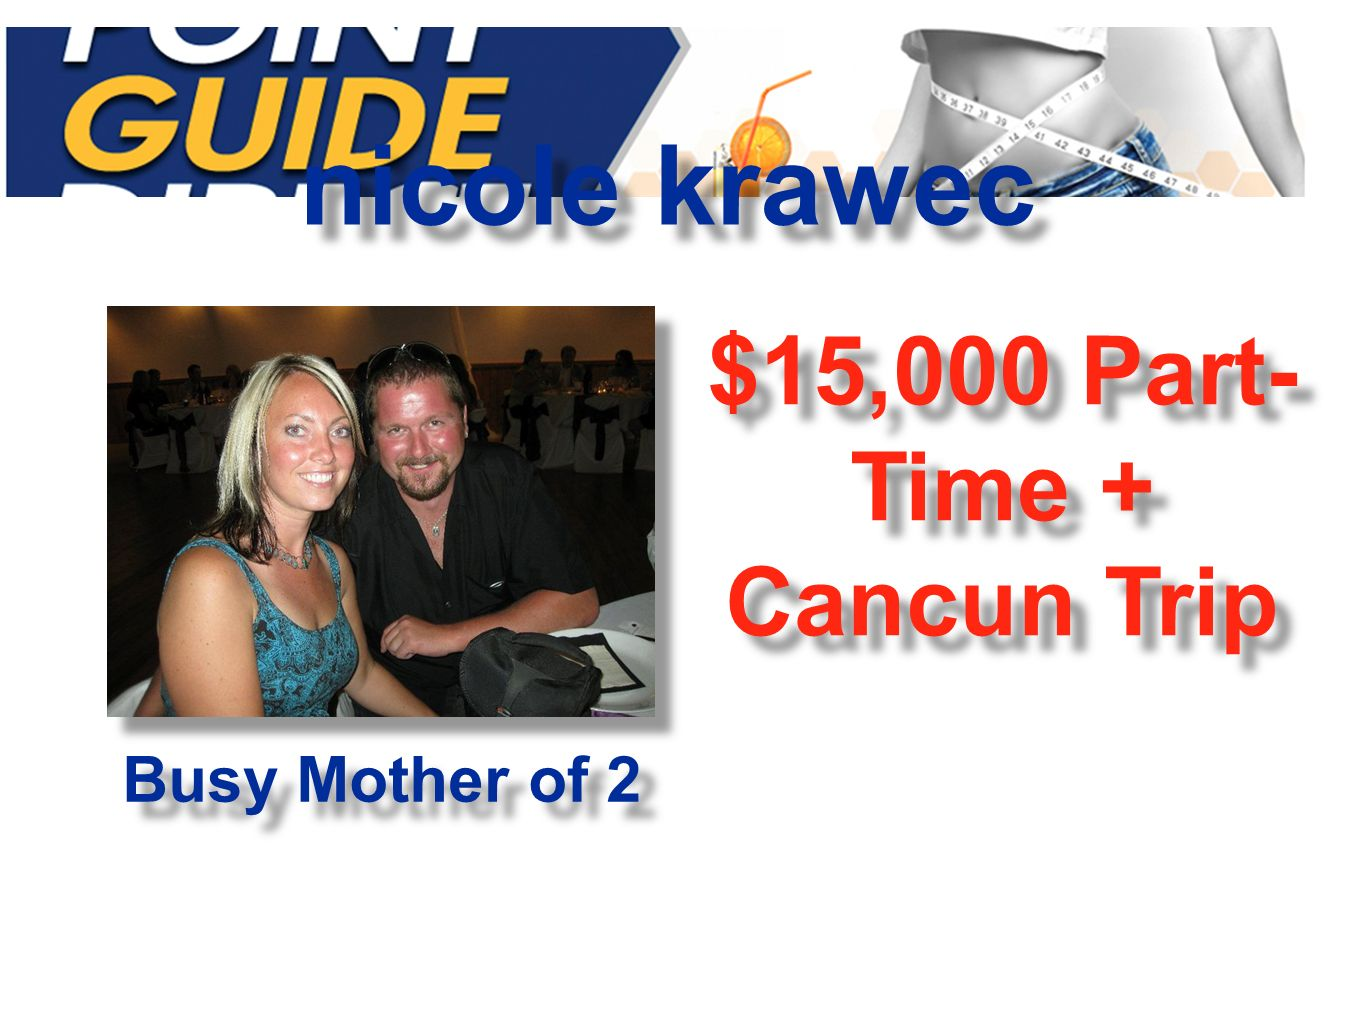 nicole krawec $15,000 Part- Time + Cancun Trip Busy Mother of 2